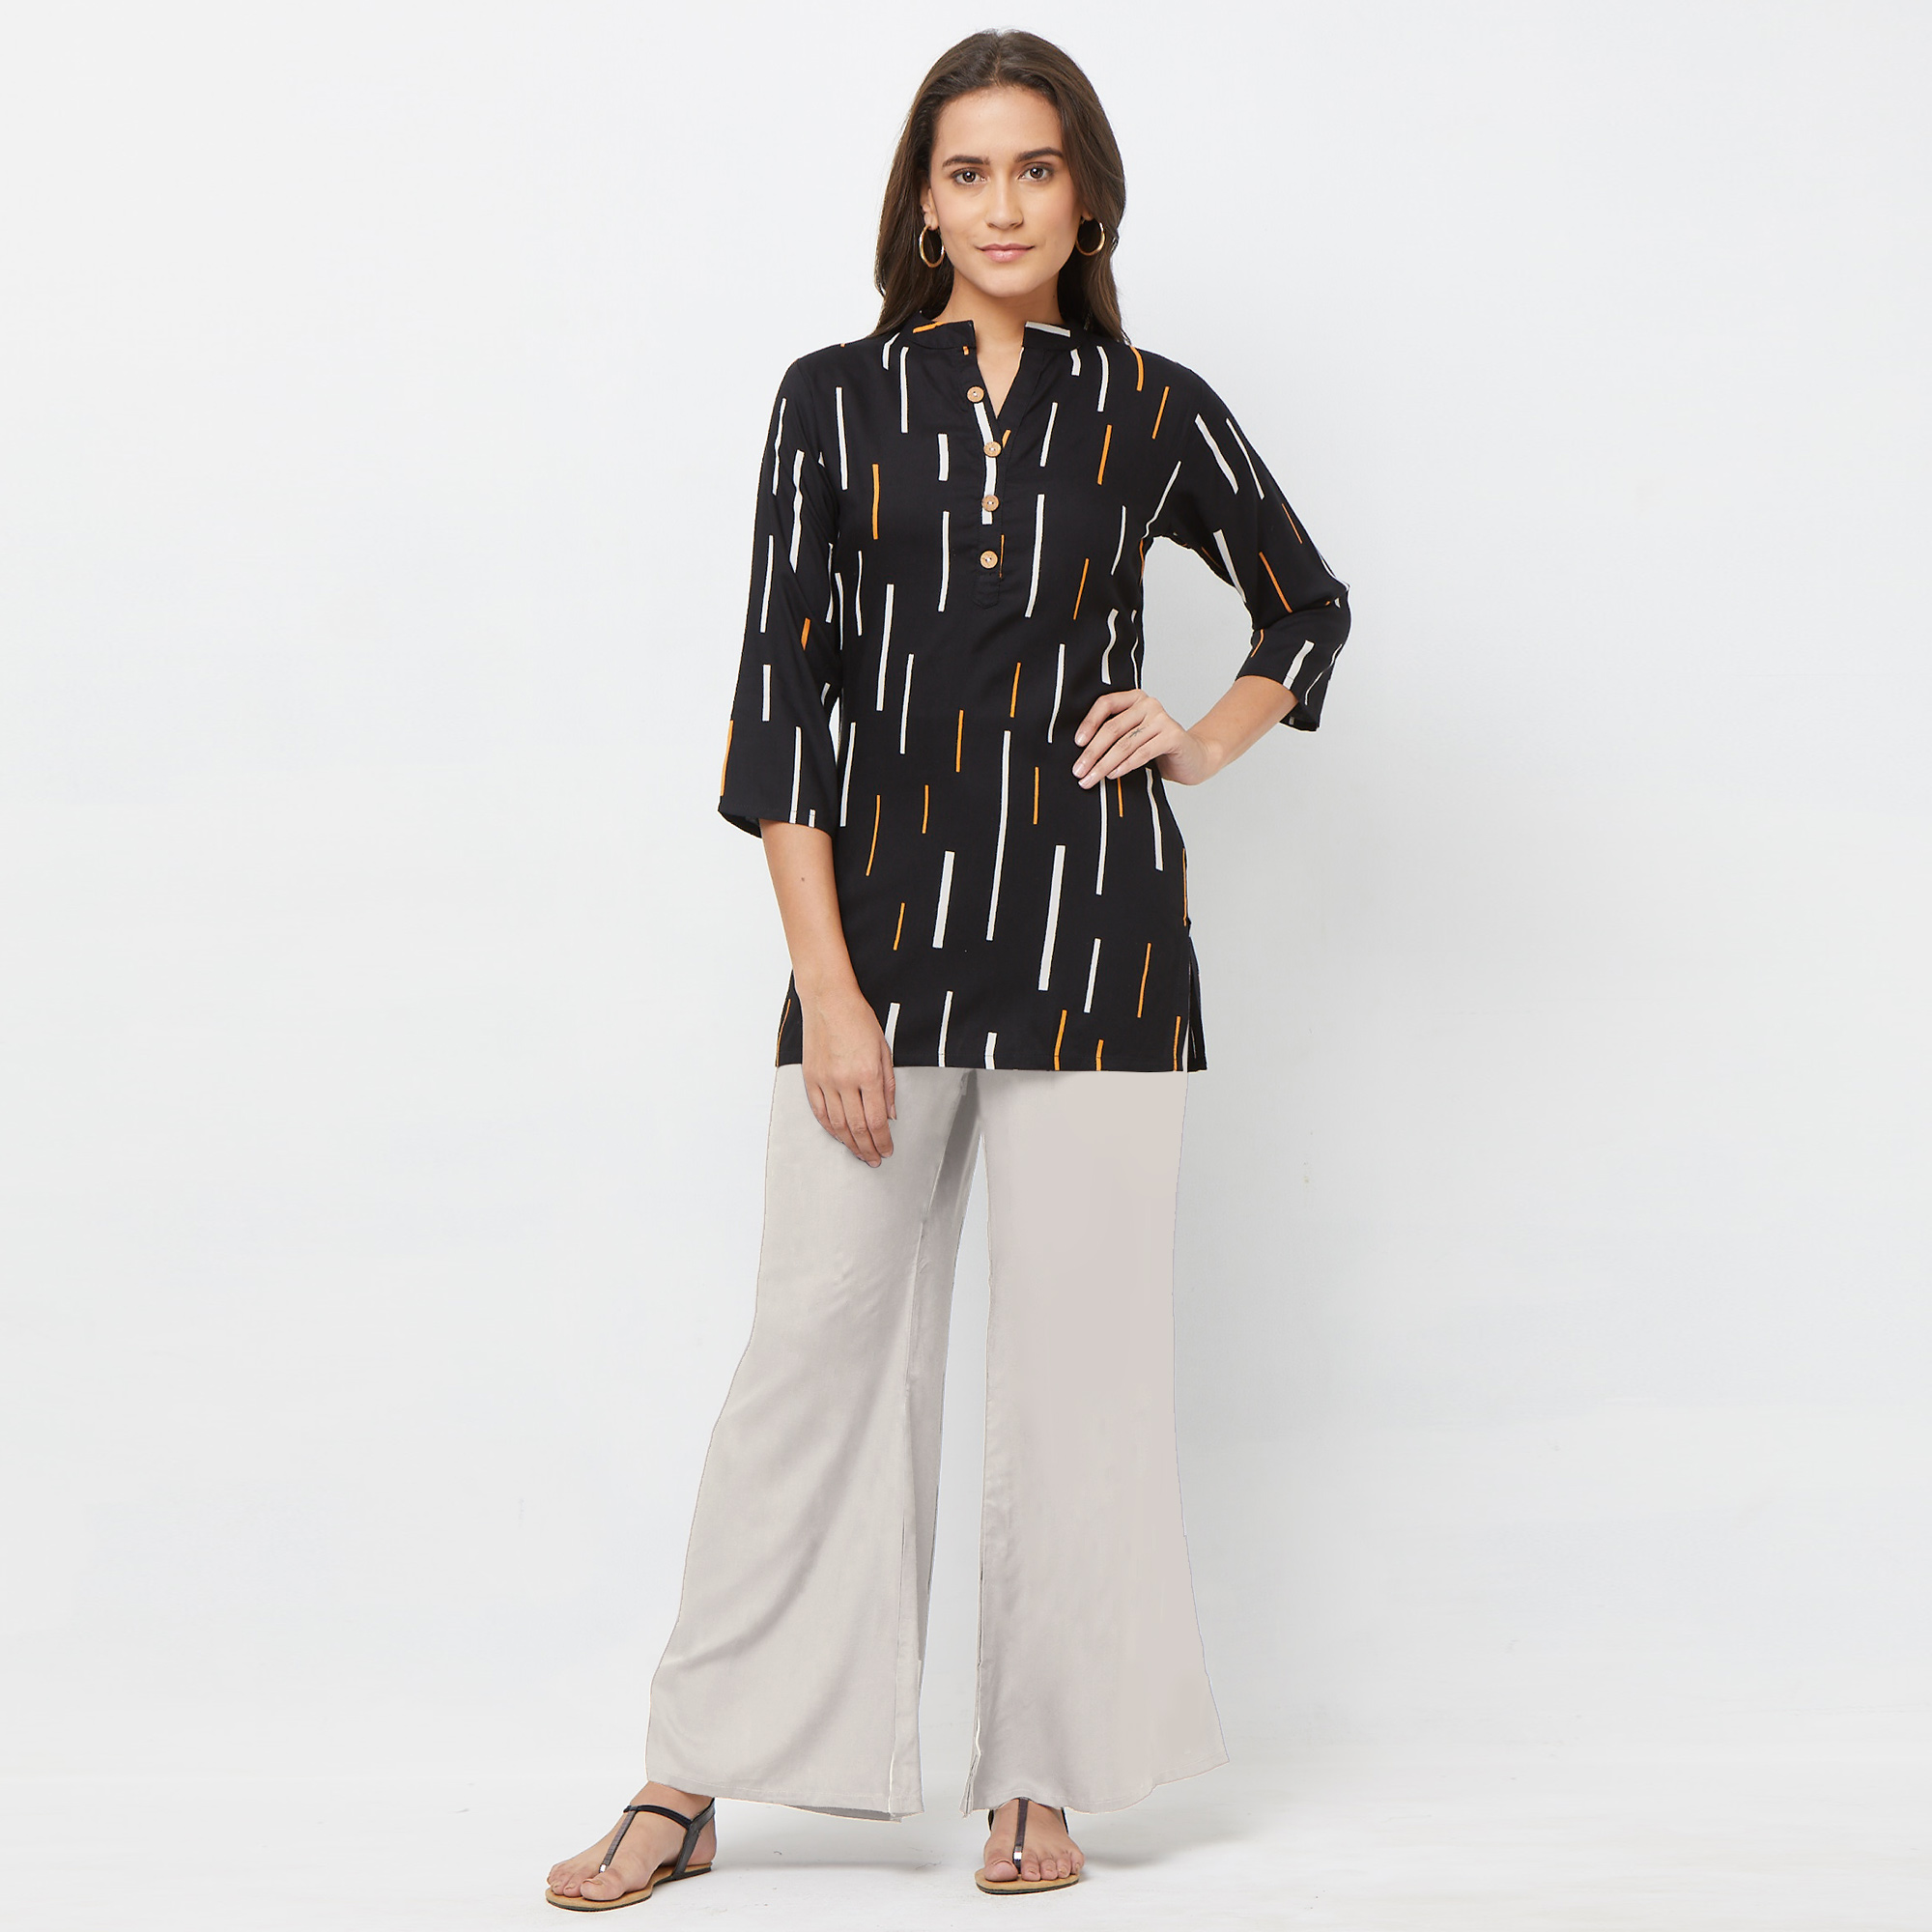 Intricate Black Colored Casual Printed Rayon Top